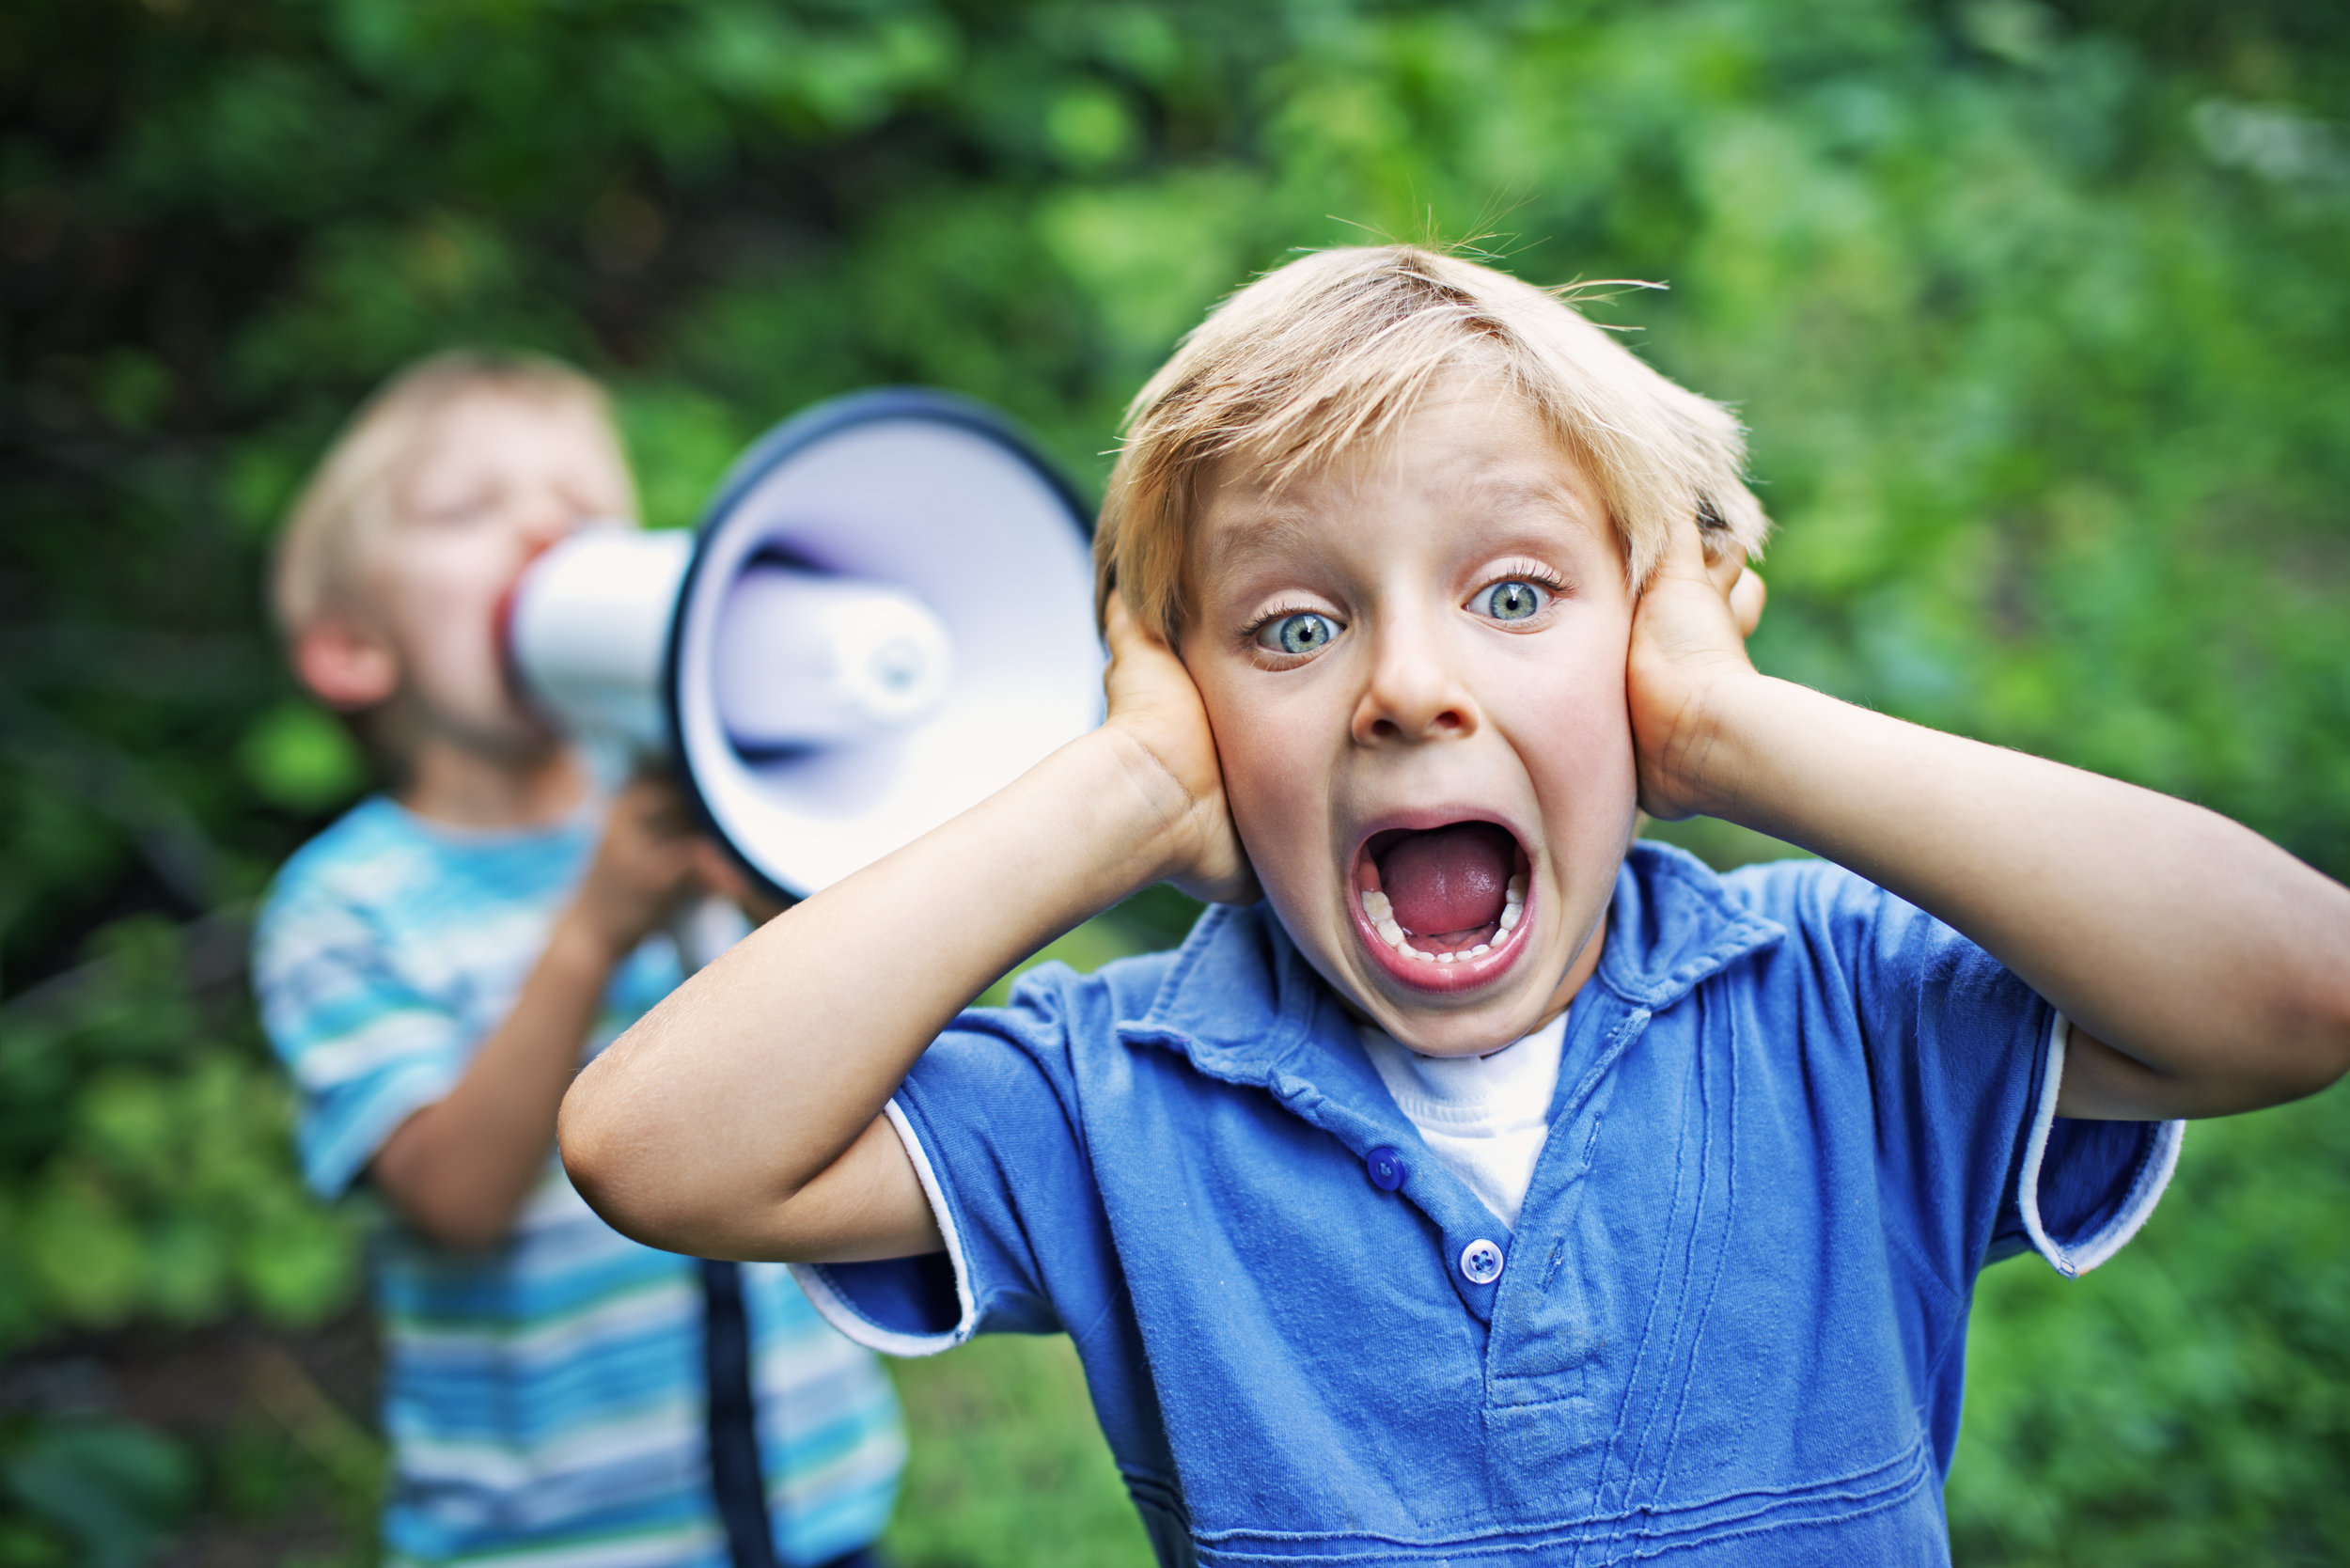 Do you hear that ? - 90% of all kids have times when they can't hear well